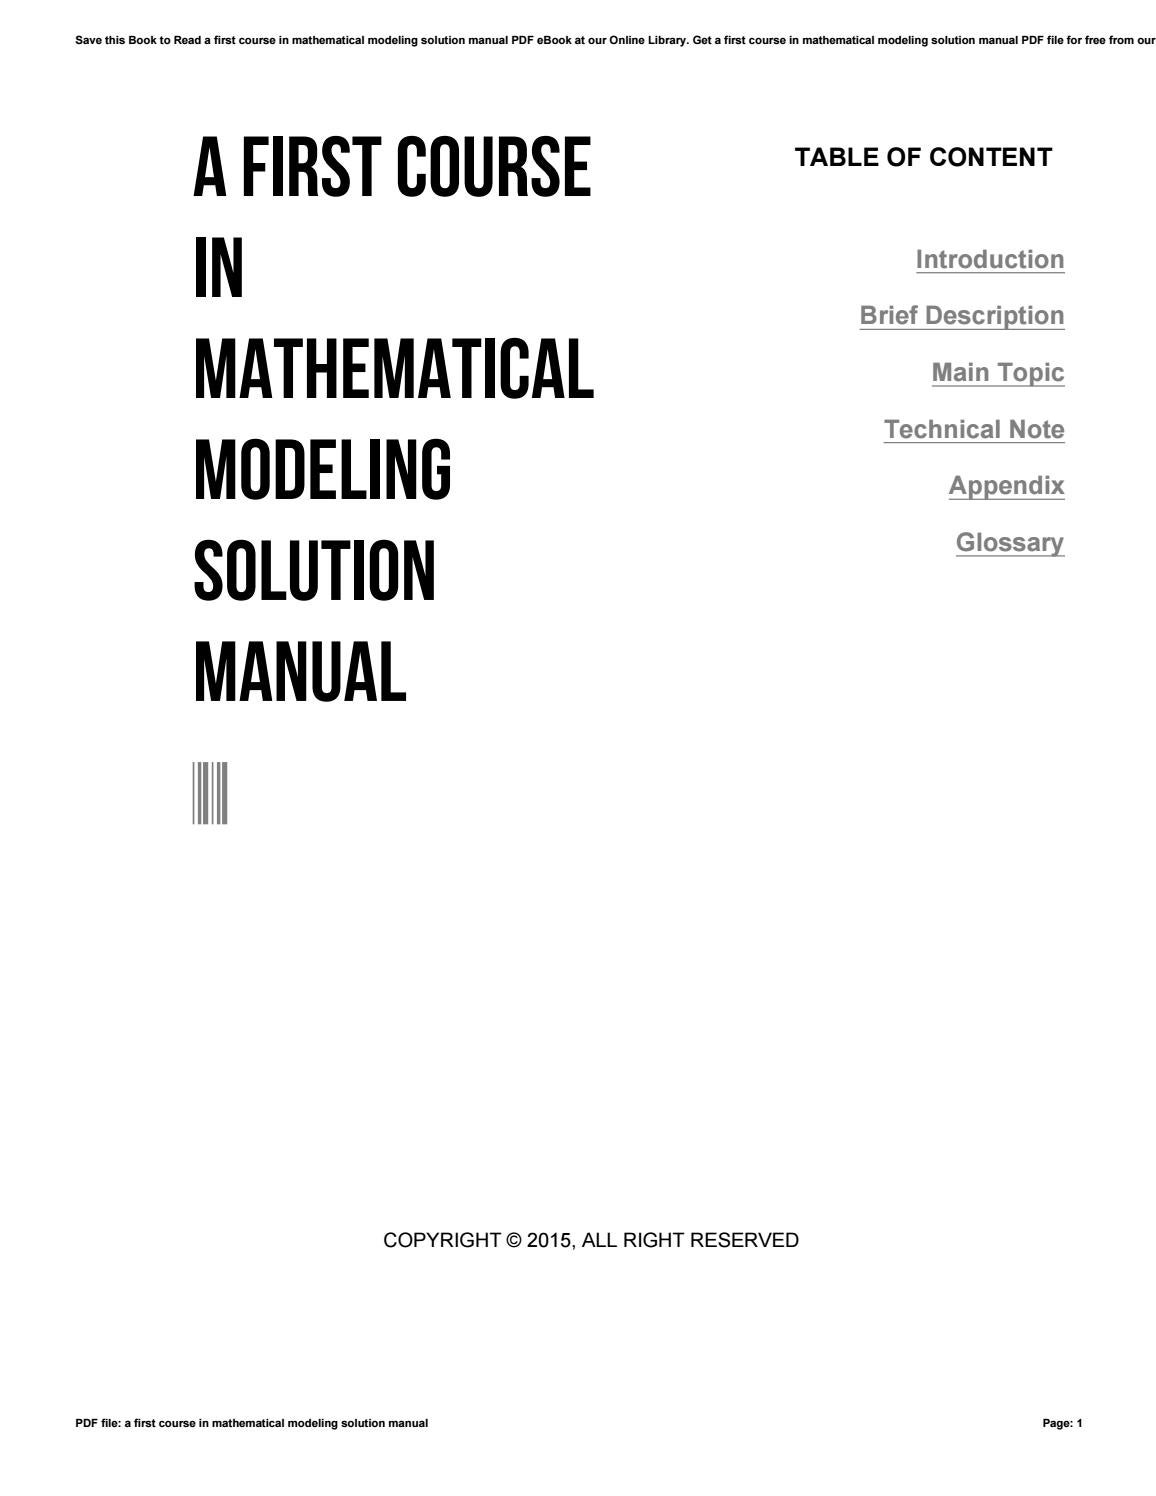 A first course in mathematical modeling solution manual by